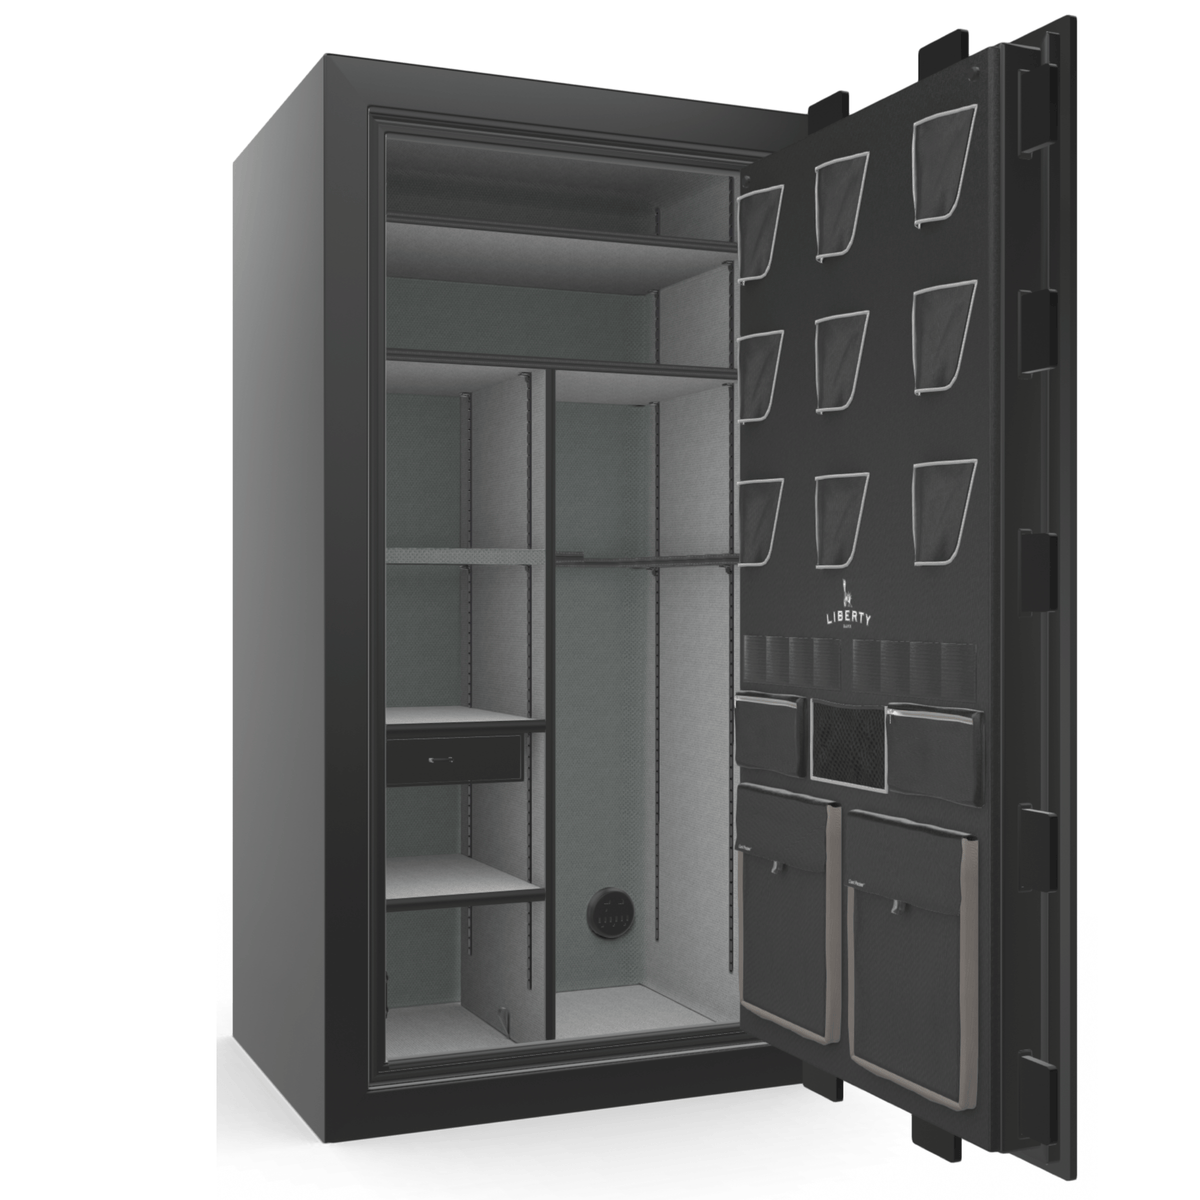 "Classic Plus Series | Level 7 Security | 110 Minute Fire Protection | 50 | DIMENSIONS: 72.5""(H) X 42""(W) X 32""(D) 